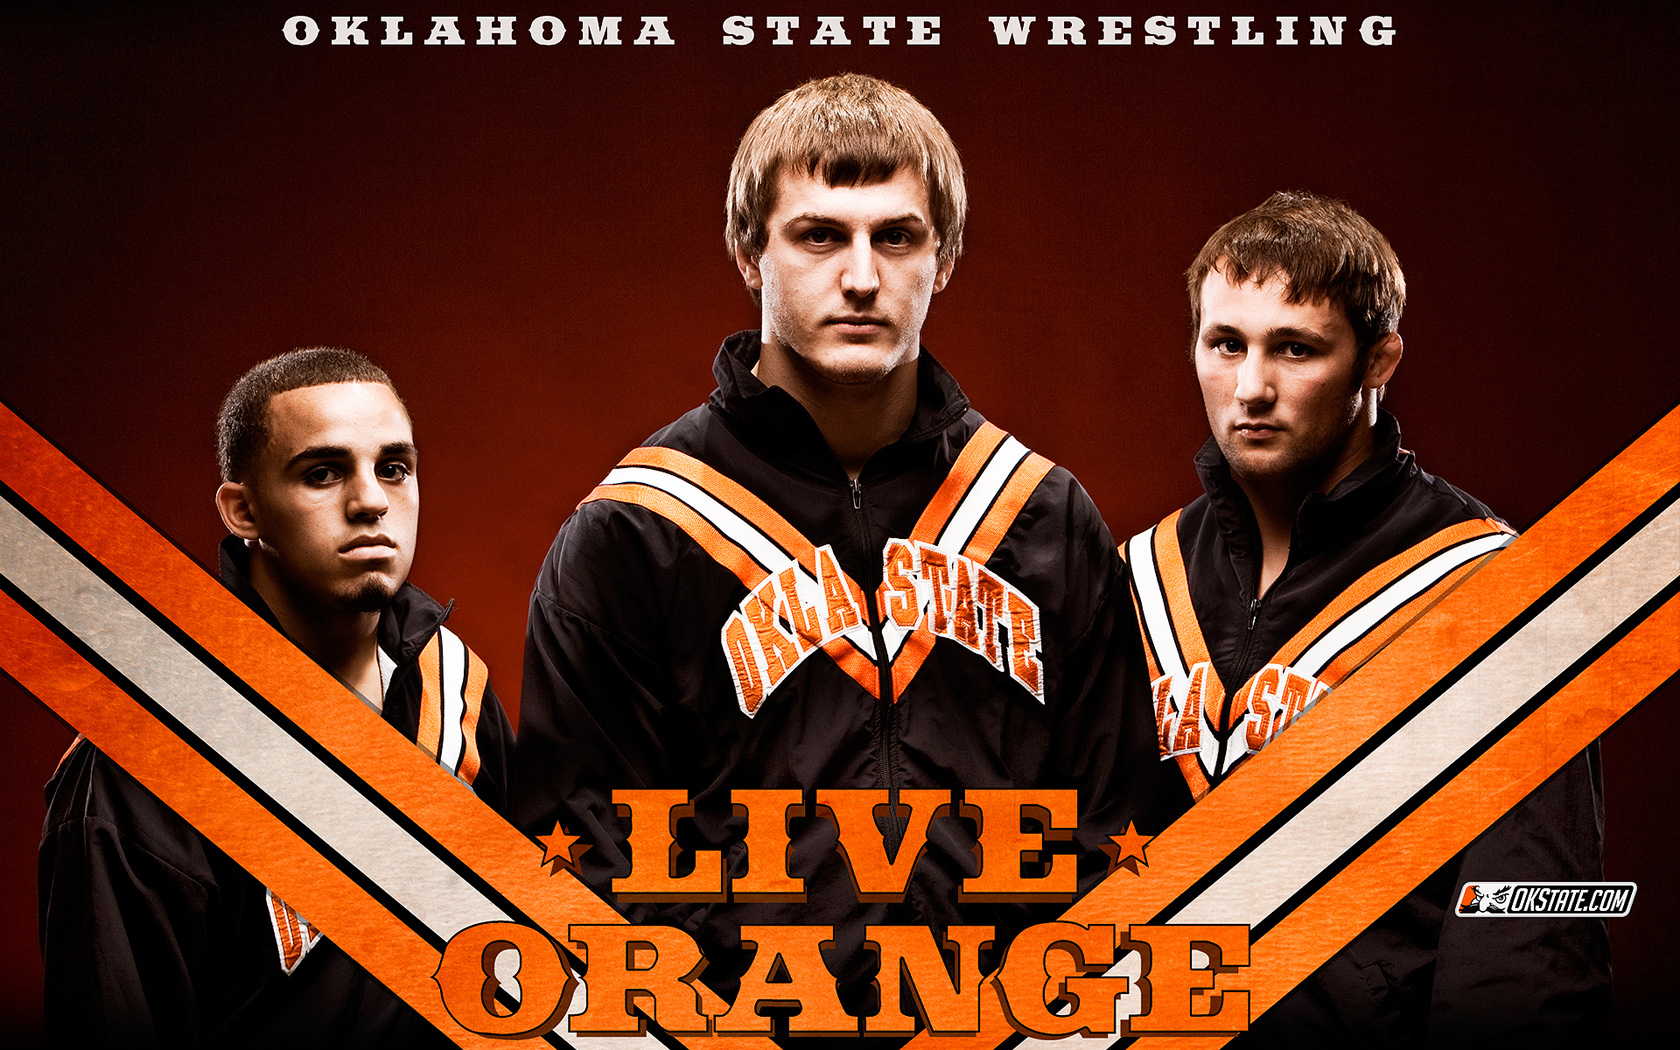 College Wrestling Wallpaper Oklahoma State Official 1680x1050